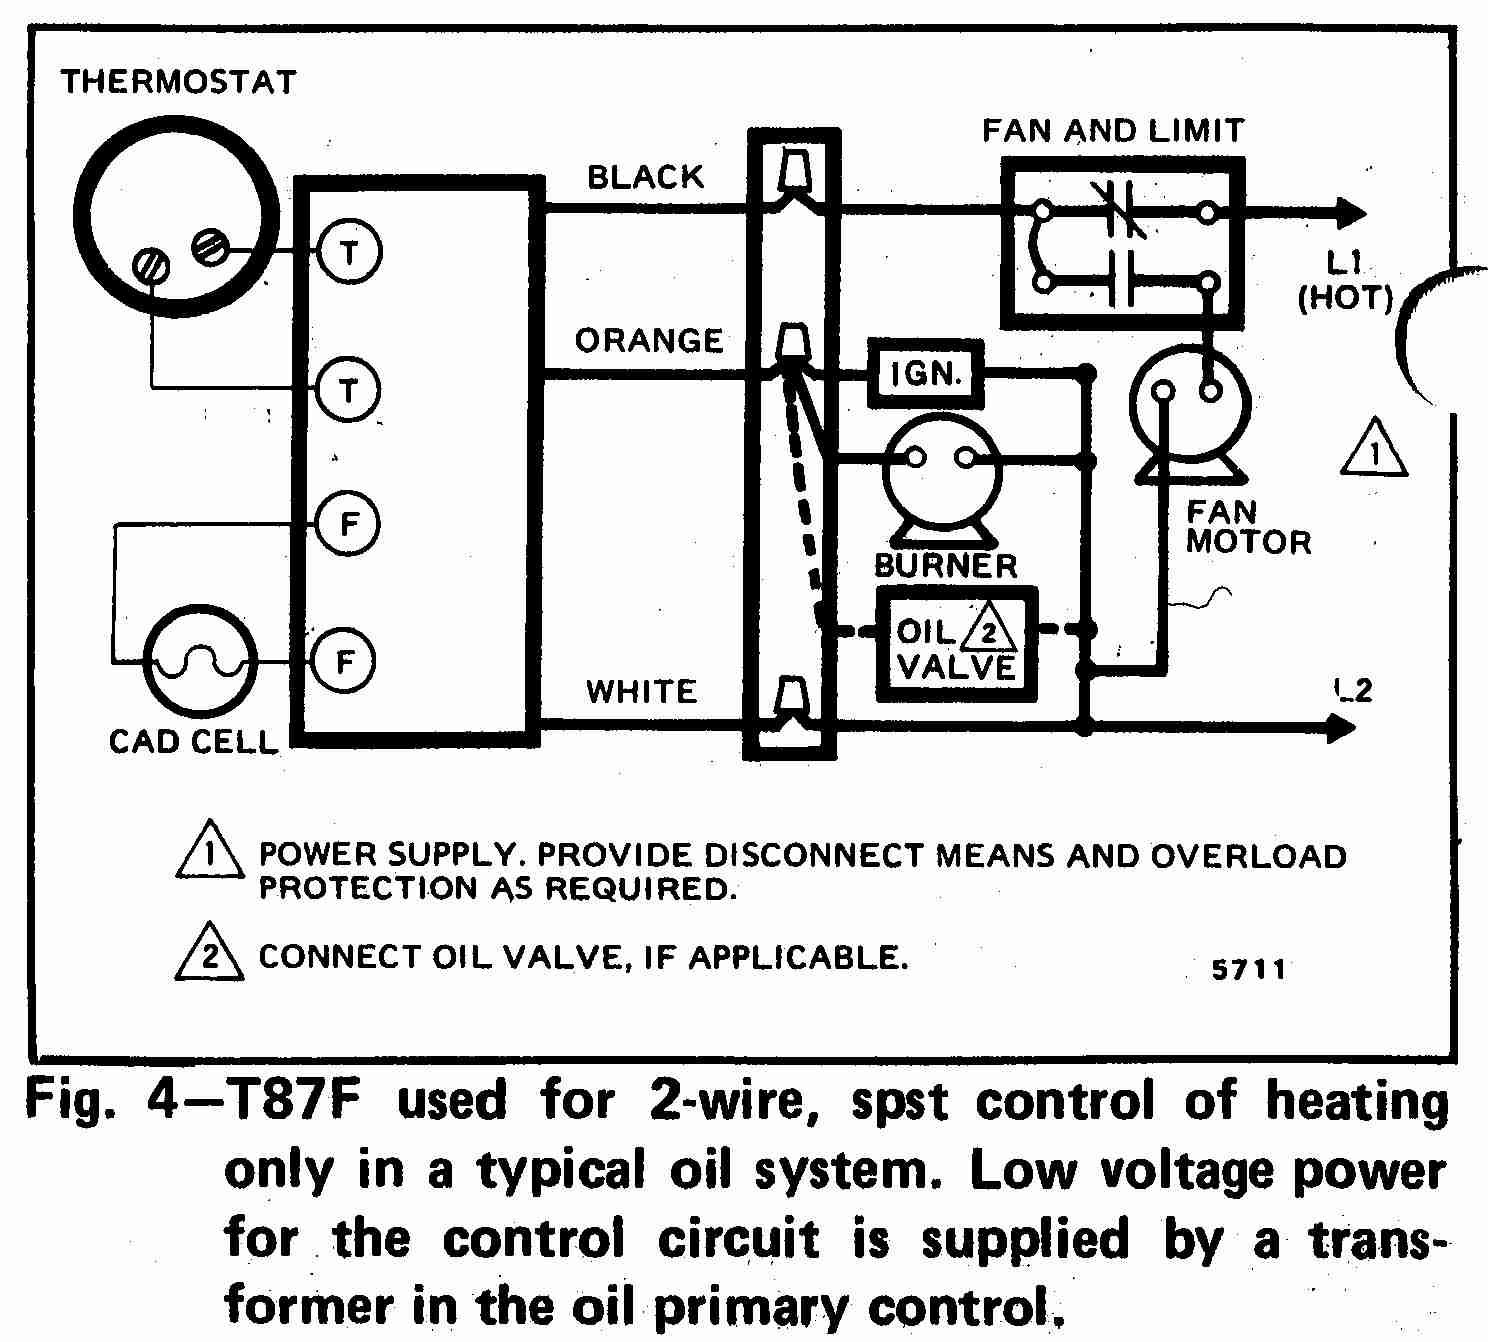 room thermostat wiring diagrams for hvac systems,Wiring diagram,Wiring Diagram For Central Air And Heat